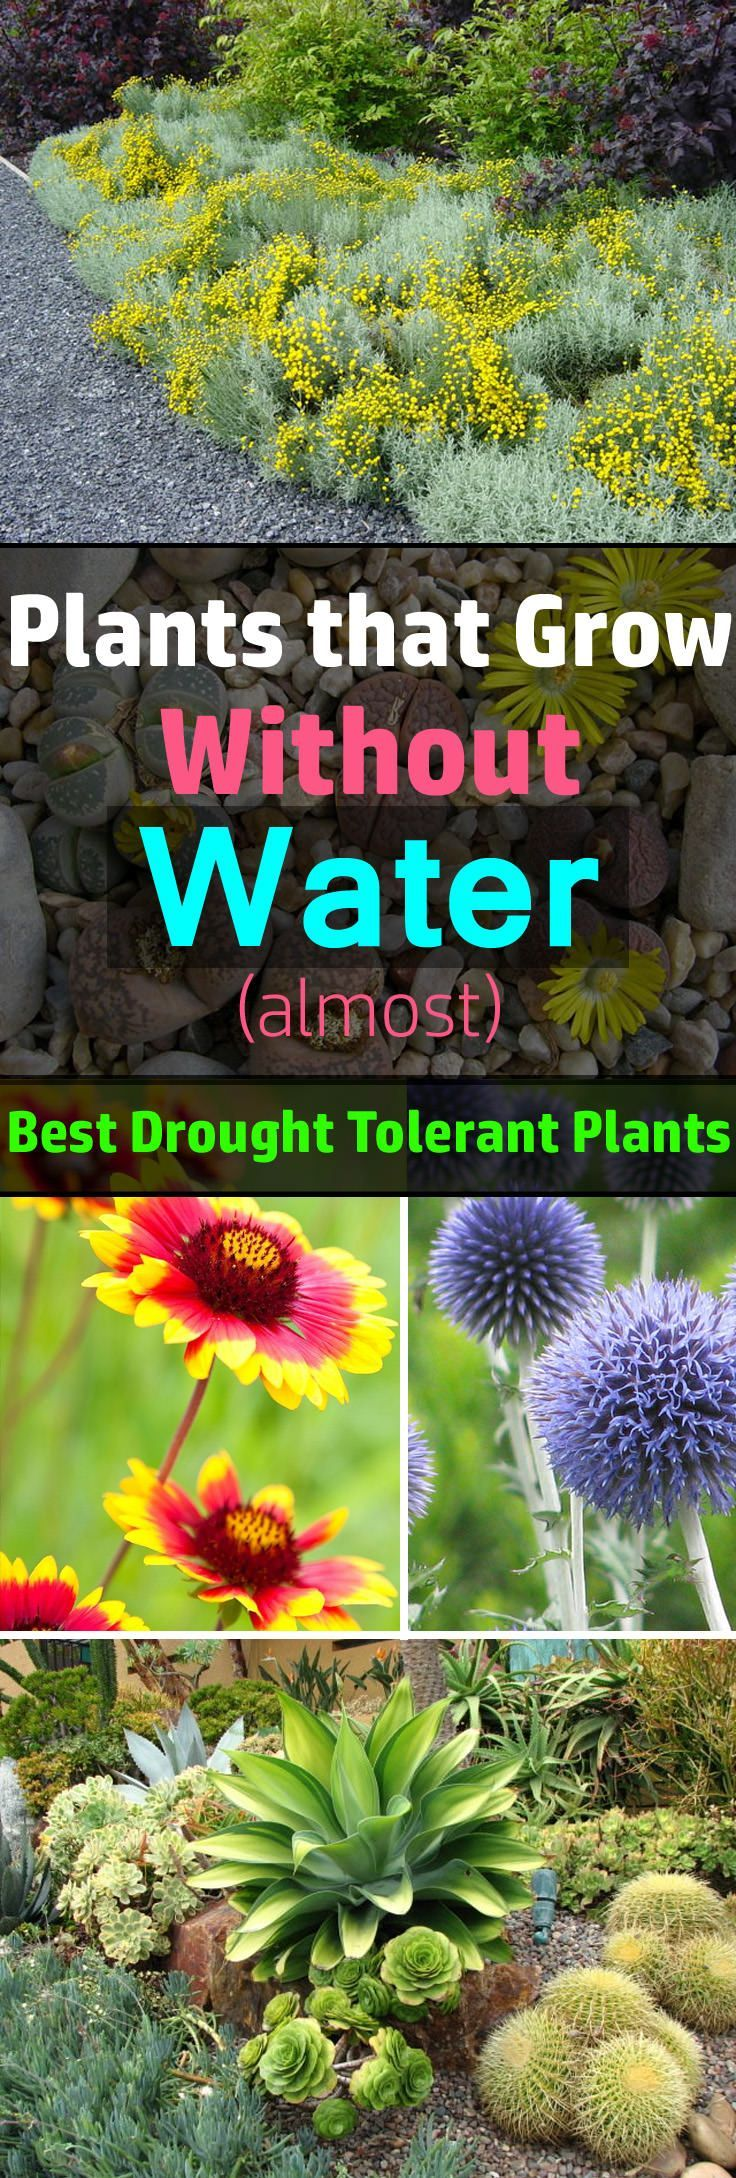 24 Best Drought Tolerant Plants That Grow In Lack Of Water